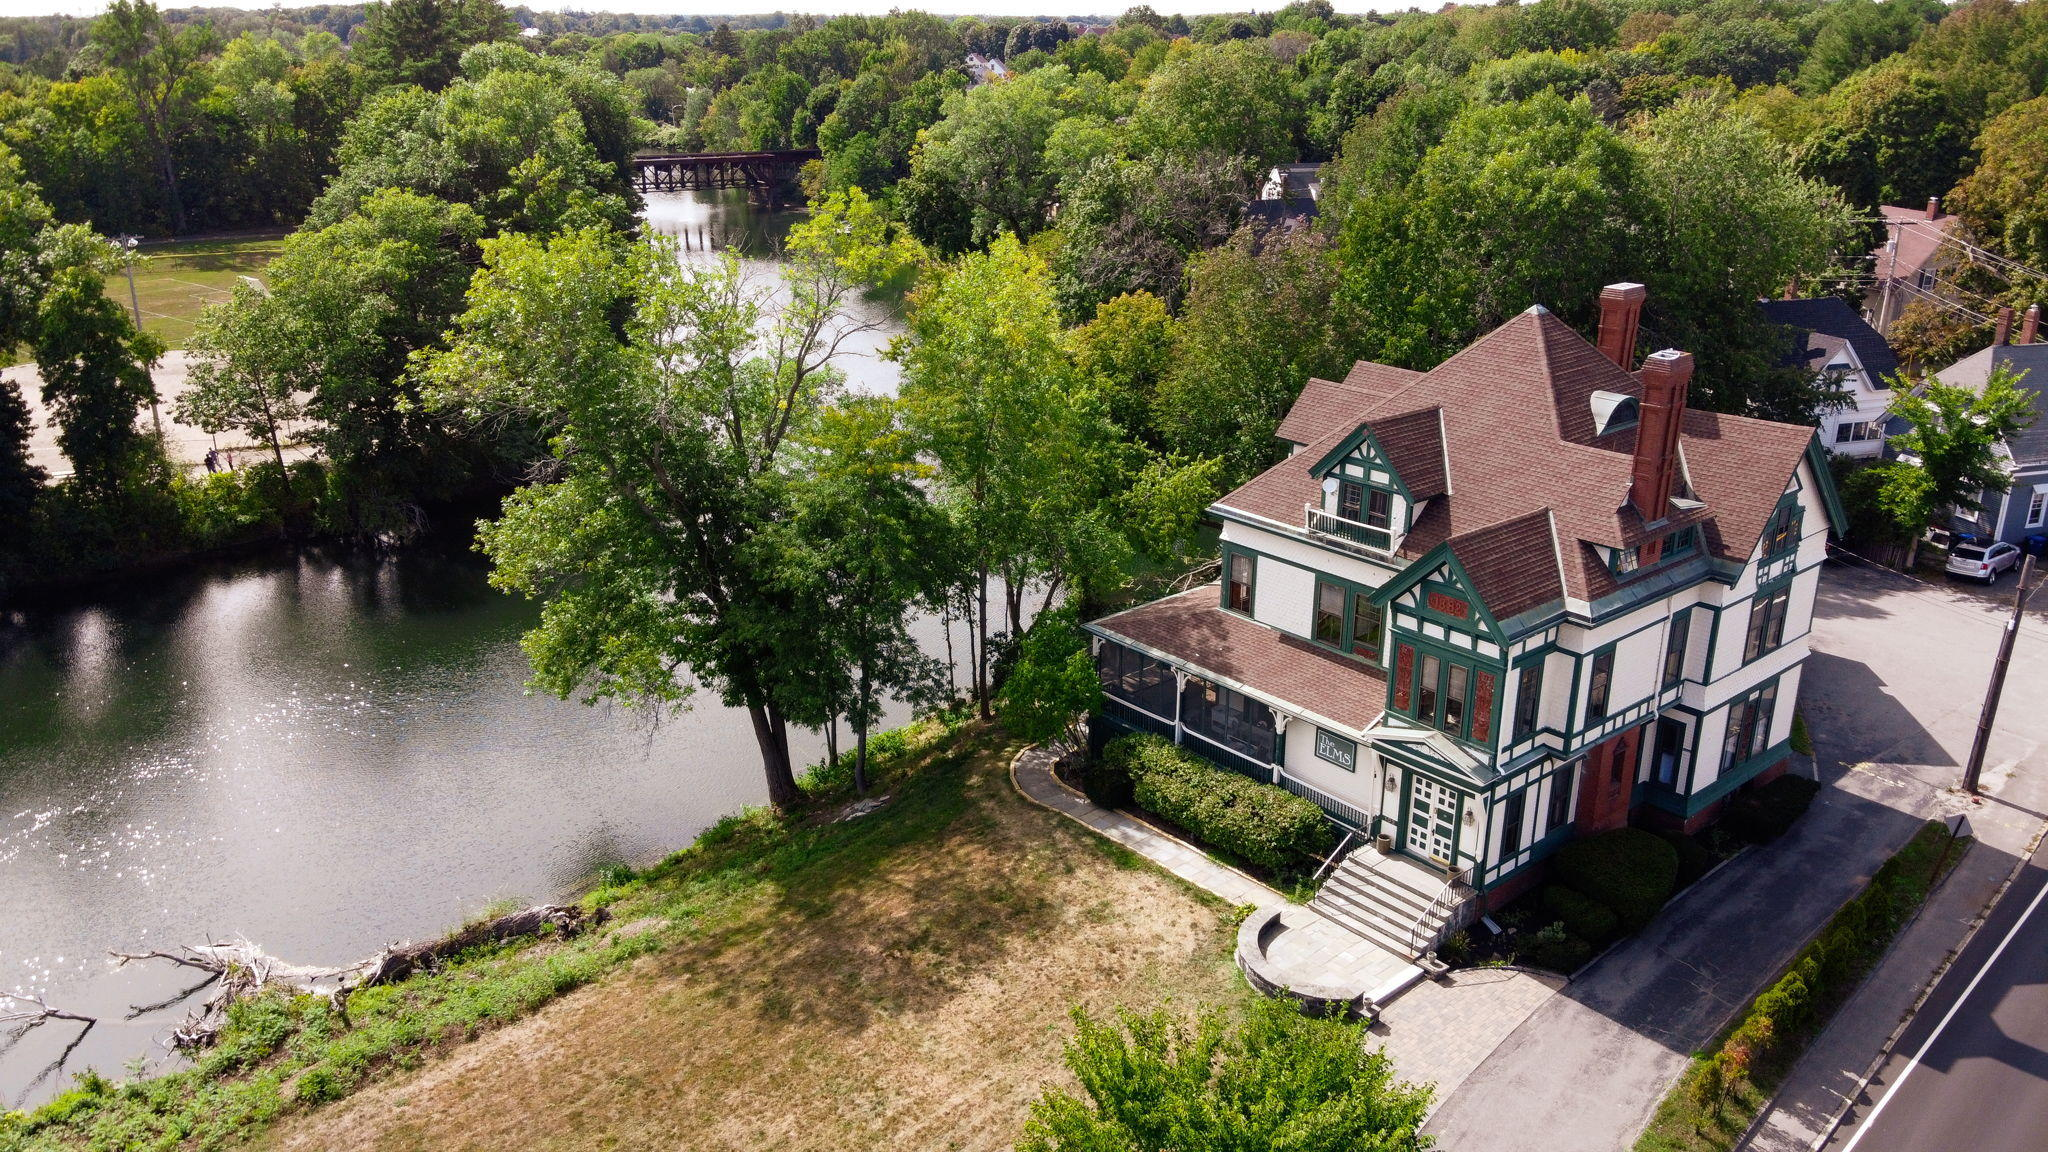 Main image for MLS listing 1440979